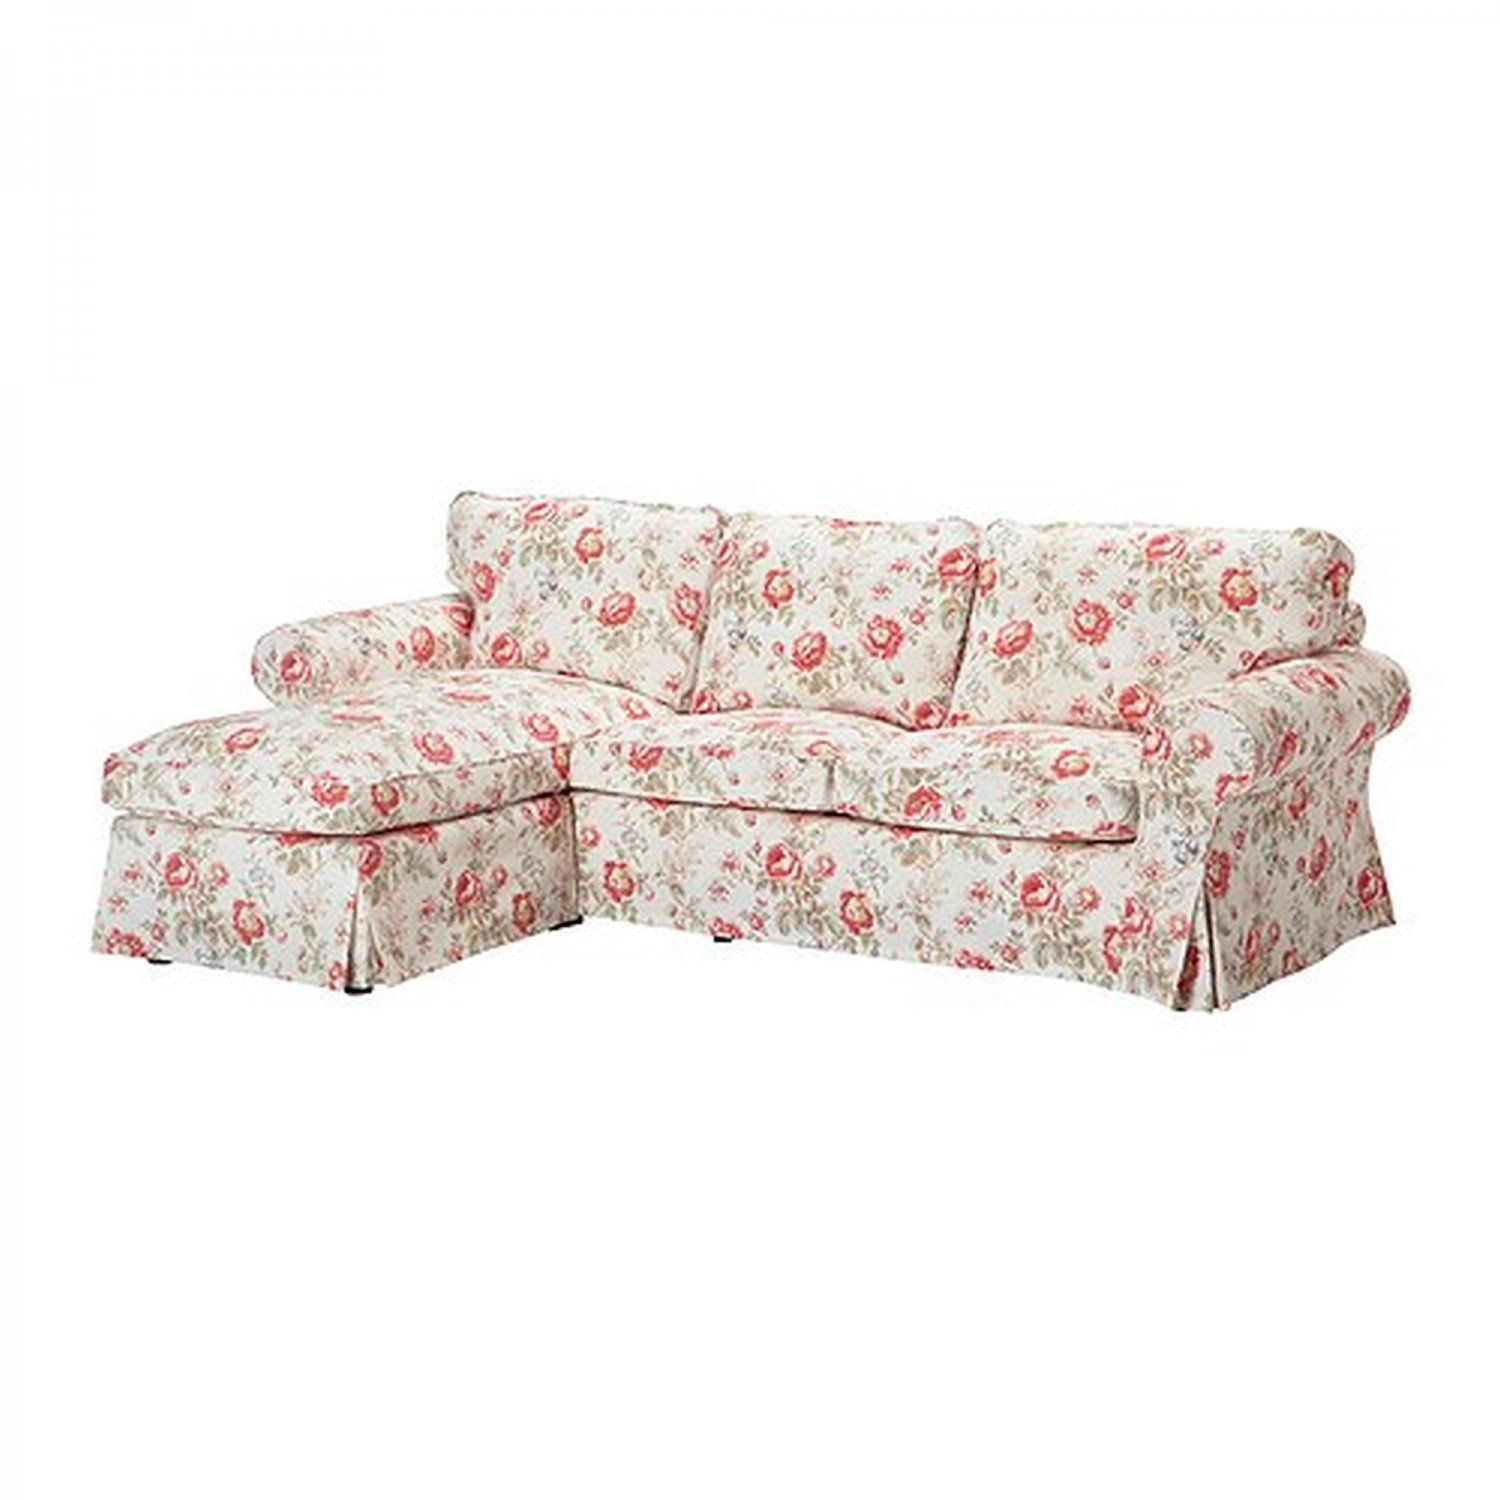 Ikea Ektorp Loveseat Sofa With Chaise Cover Slipcover Byvik Multi